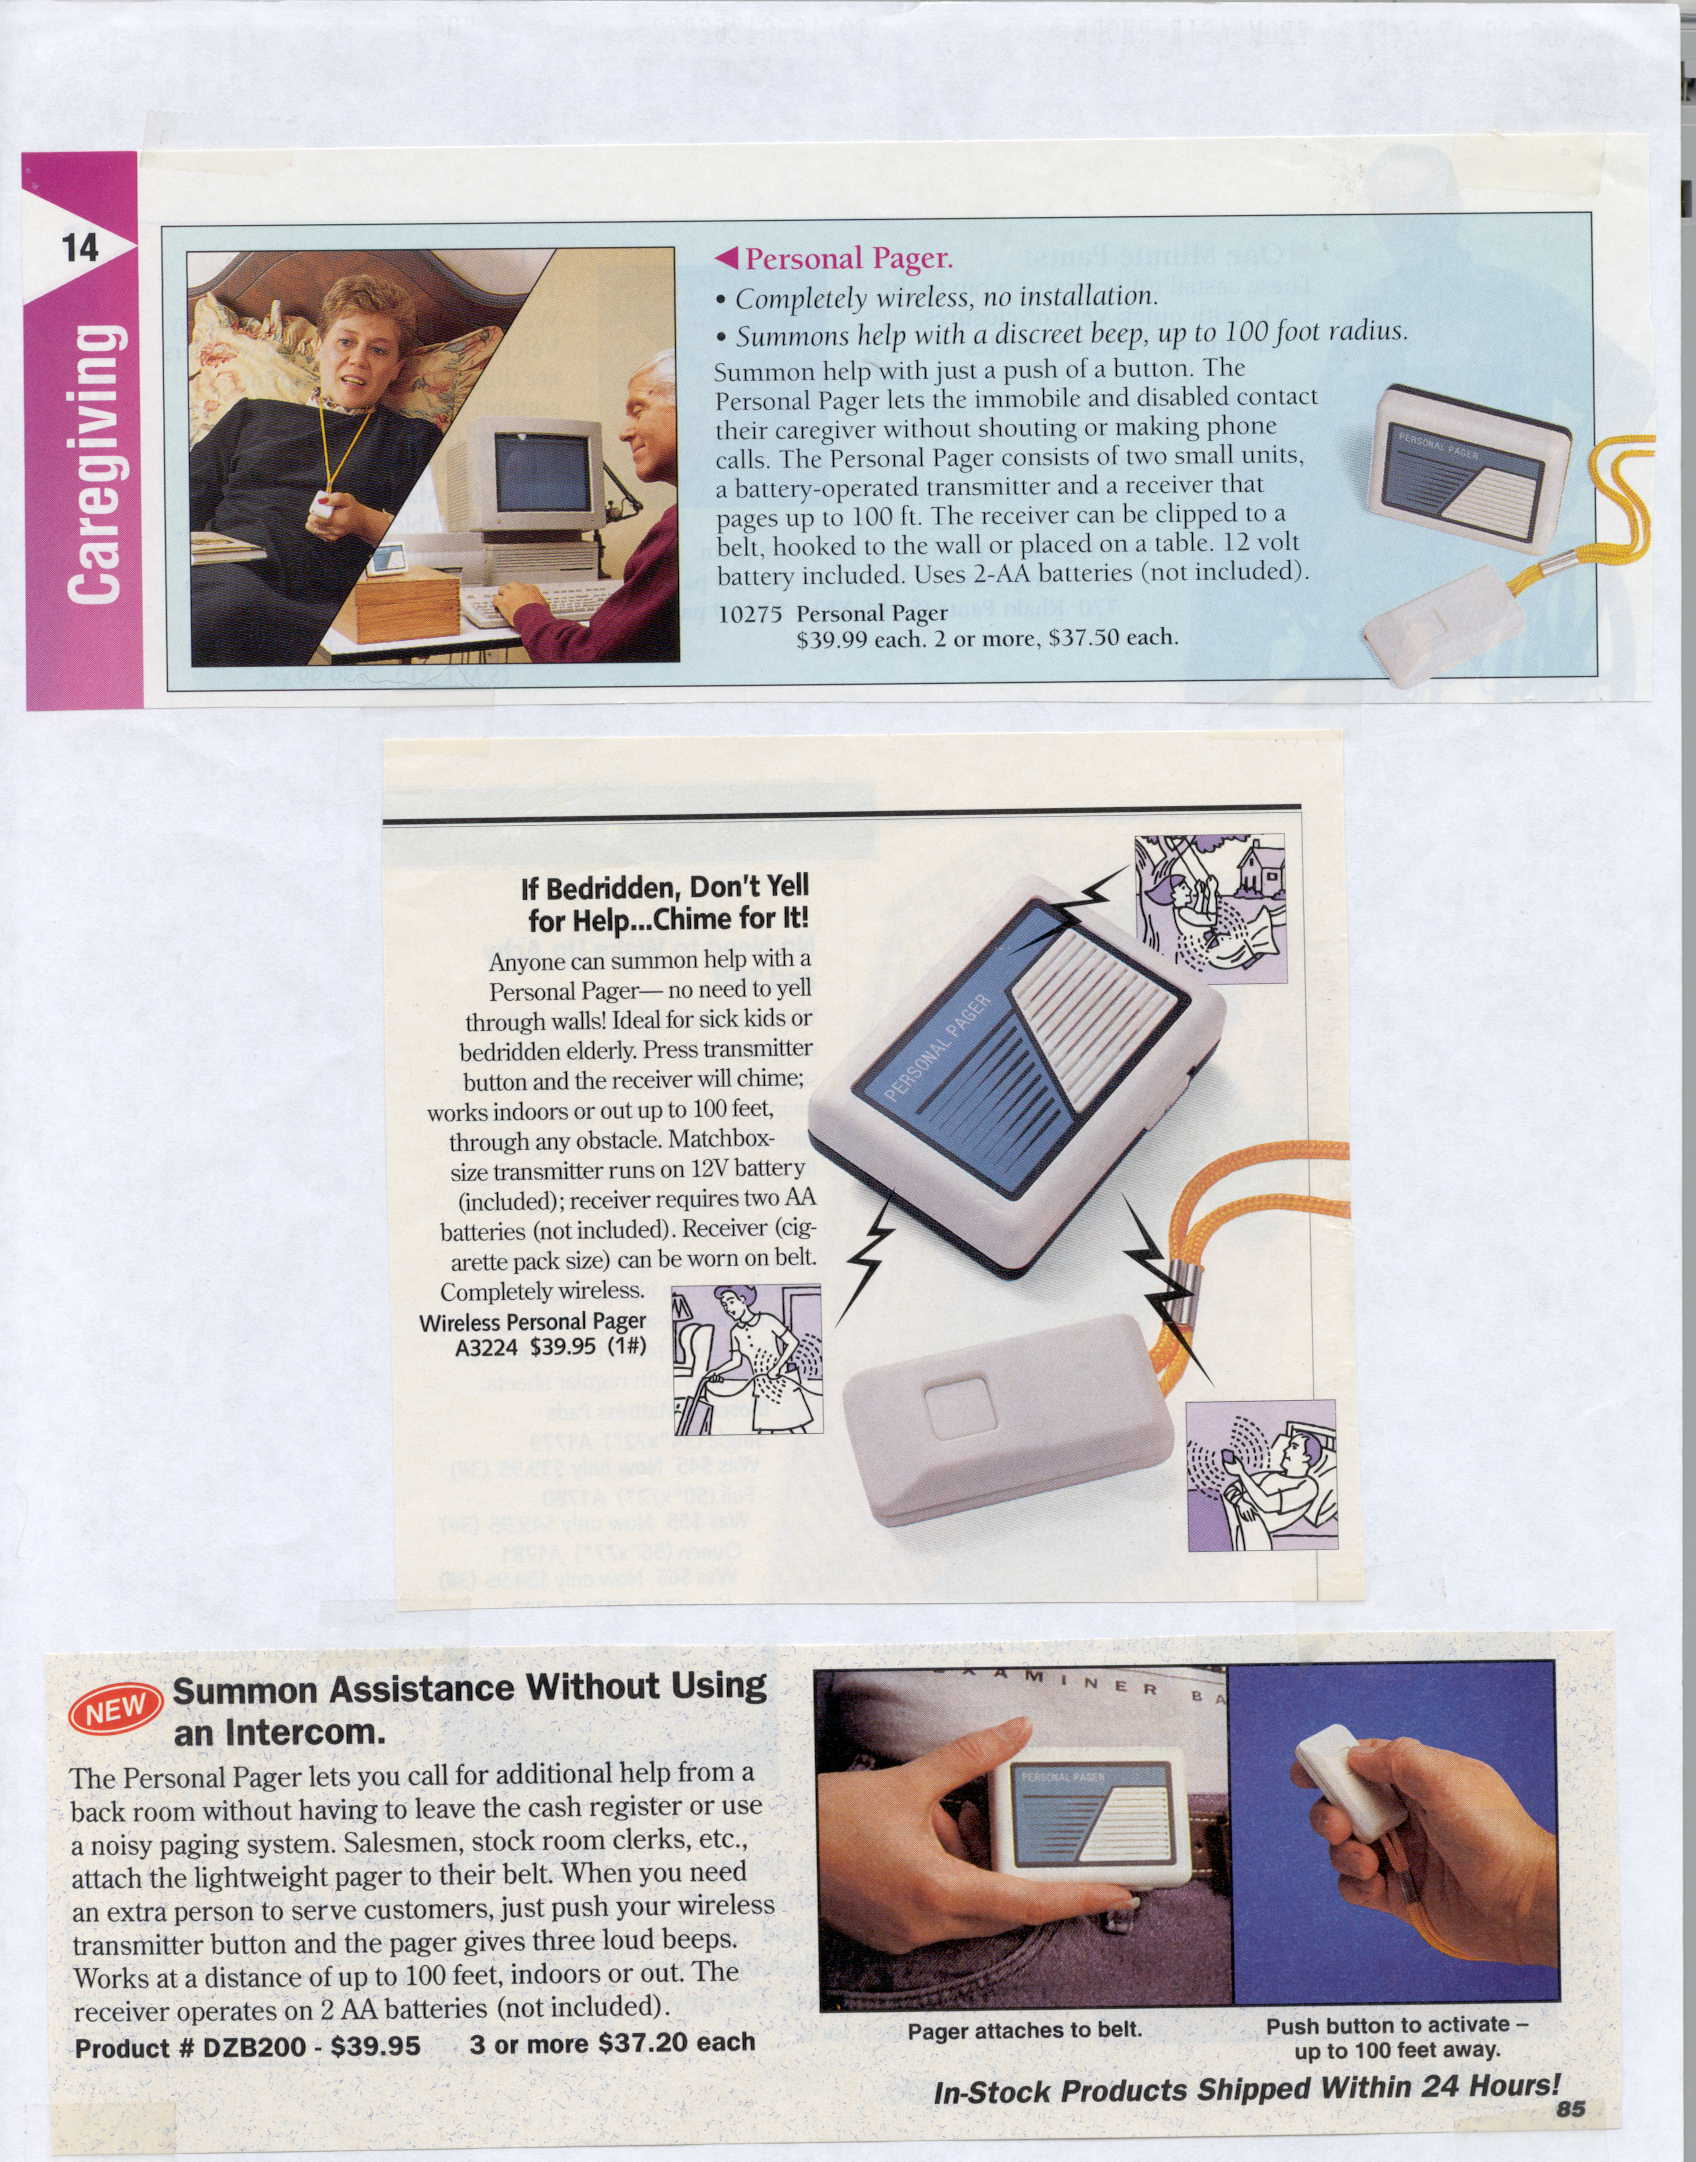 Sample Catalog Page showing Personal Pagers in use; Actual size=960 pixels wide